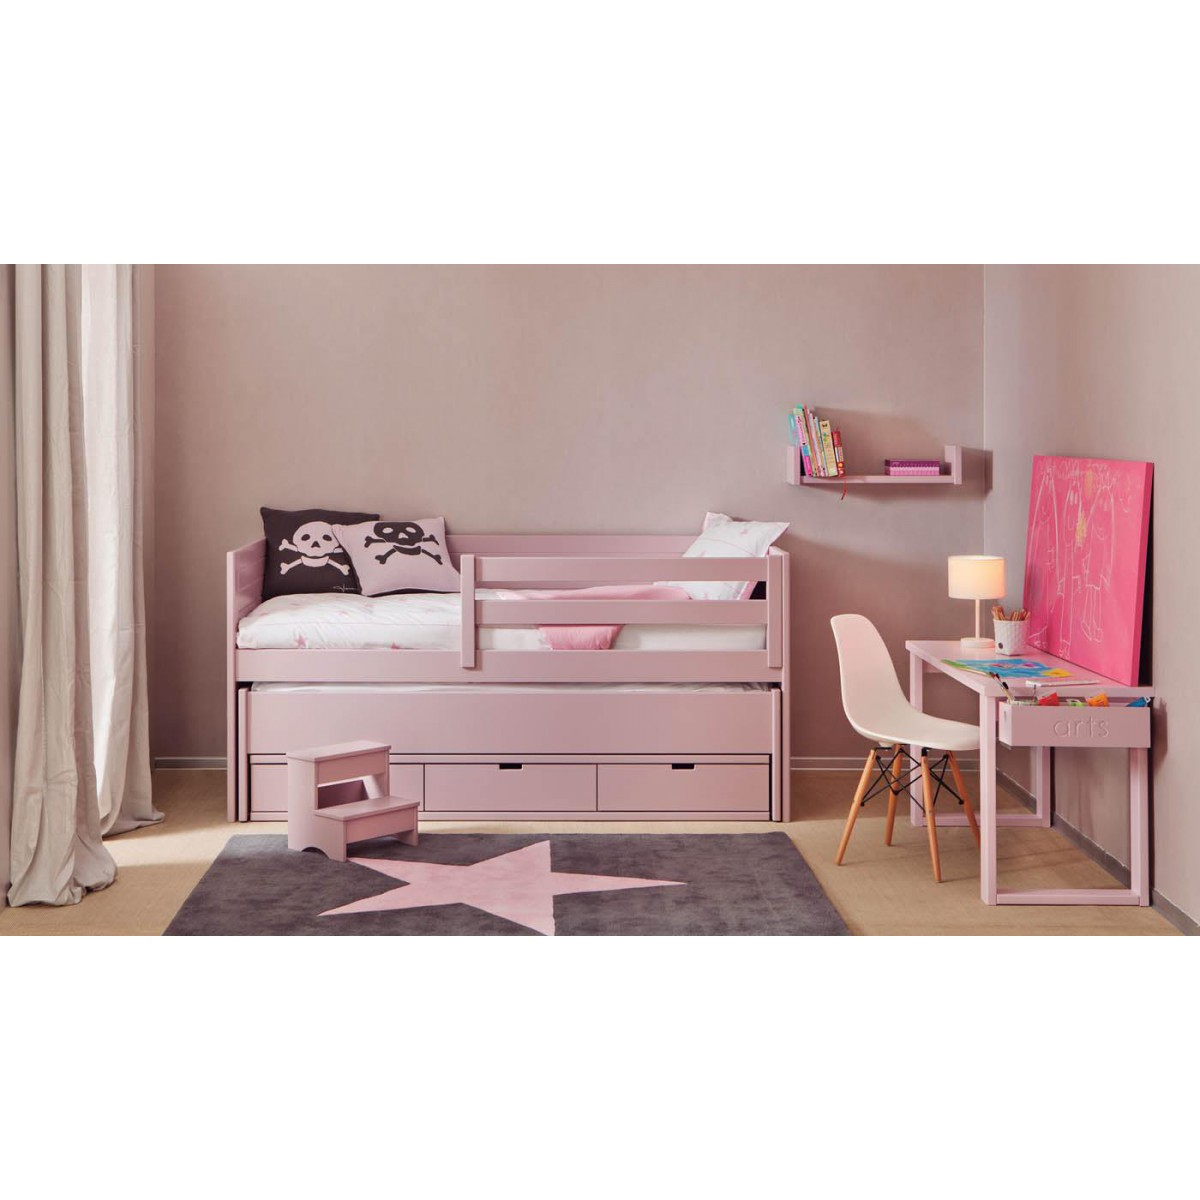 chambre pour enfants haut de gamme sign e asoral. Black Bedroom Furniture Sets. Home Design Ideas